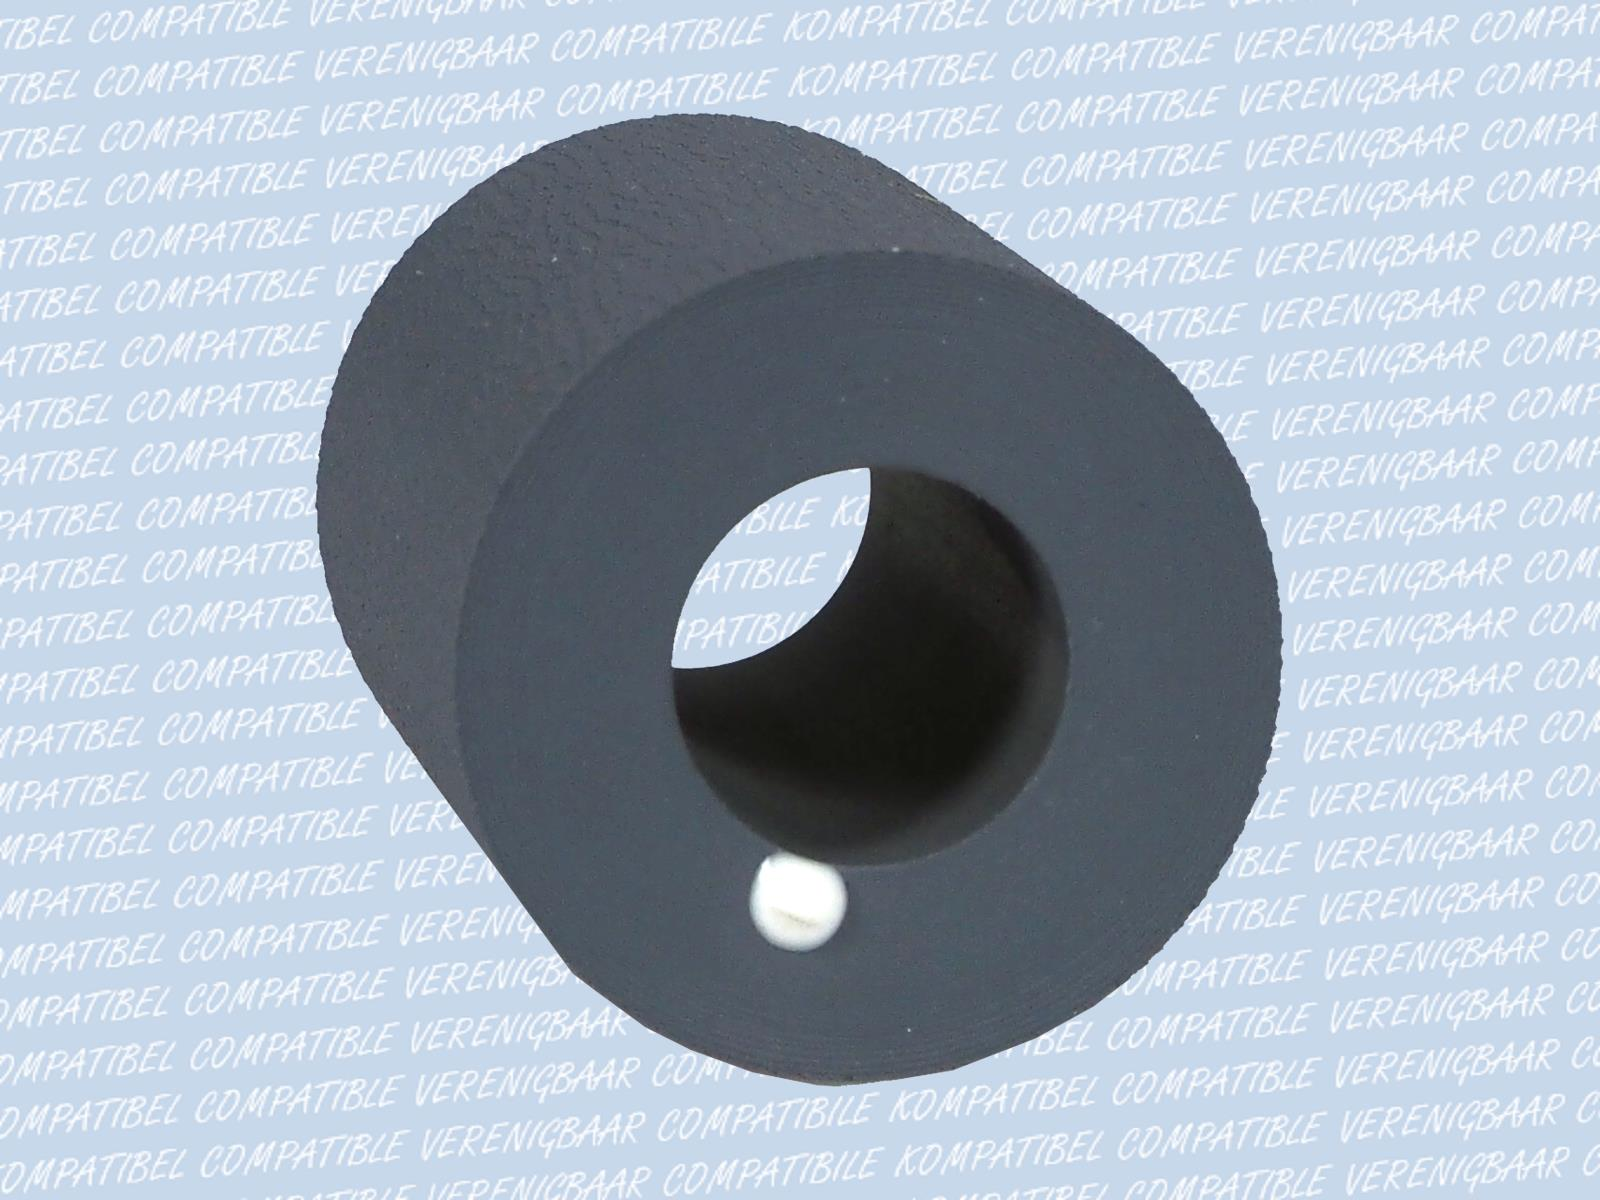 Compatible Paper Feed Roller Typ: 302F906230 for Kyocera ECOSYS: M2030dn /  M2035dn / M2530dn / M2535dn / M2540dn / M2540dw / M2635dn / M2635dw /